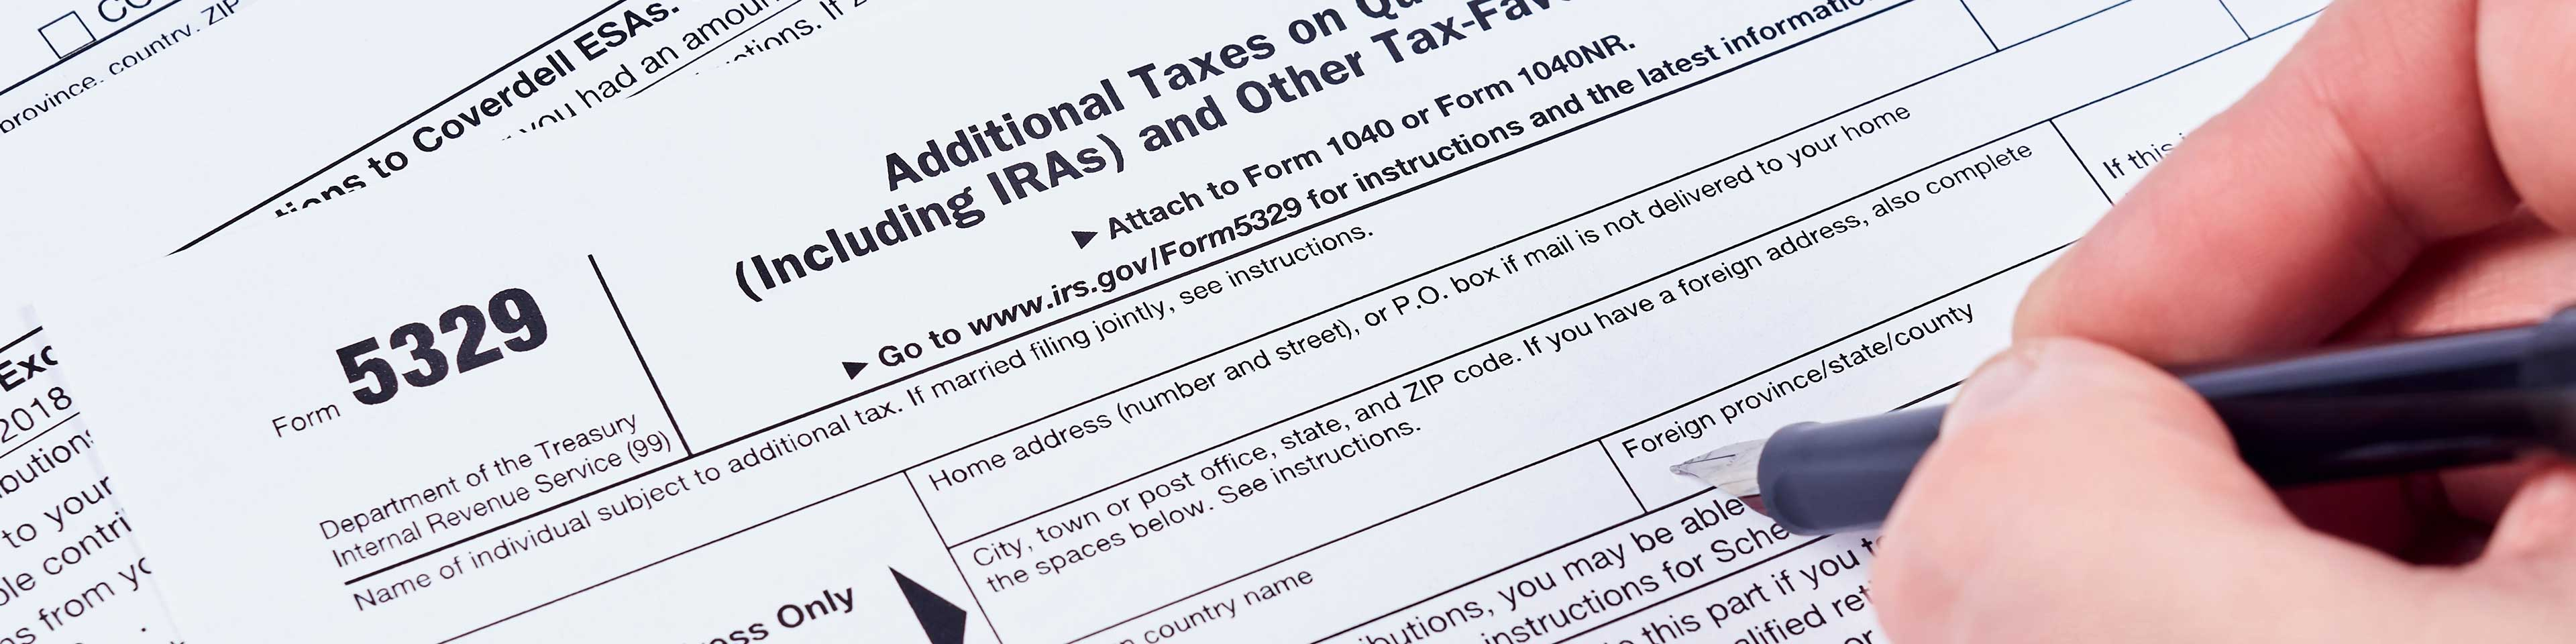 IRA distributions prior to age 59½: When must an individual file IRS Form 5329?